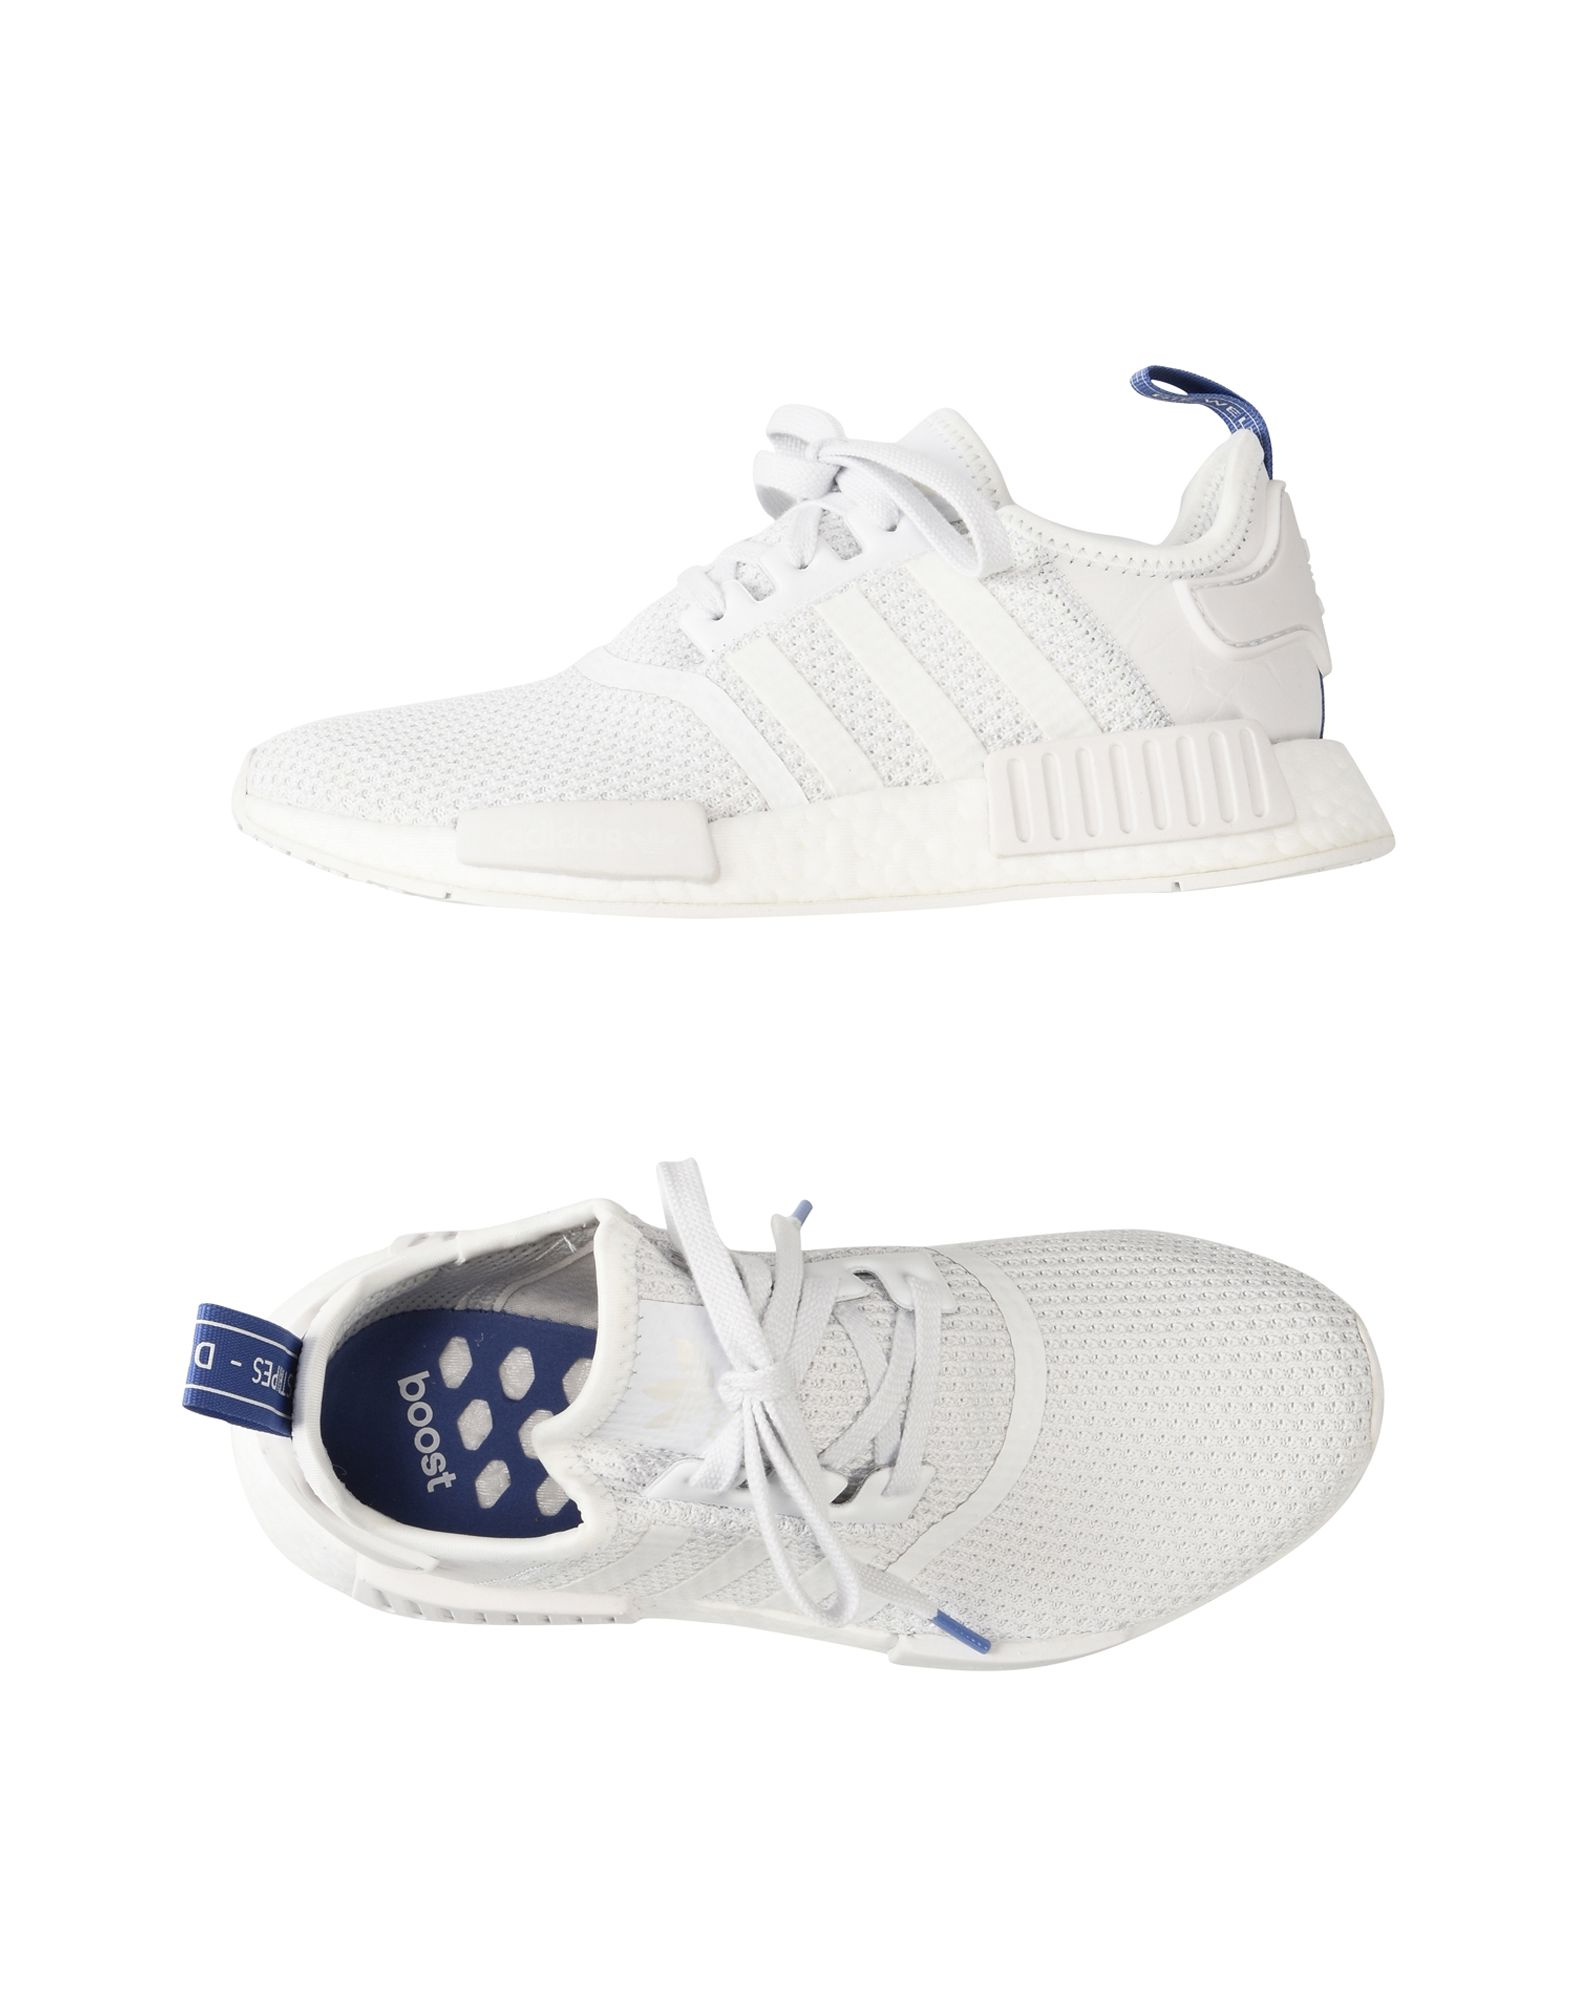 Sneakers - Adidas Originals Nmd_R1 W - Sneakers Donna - 11533698CW f01fb7